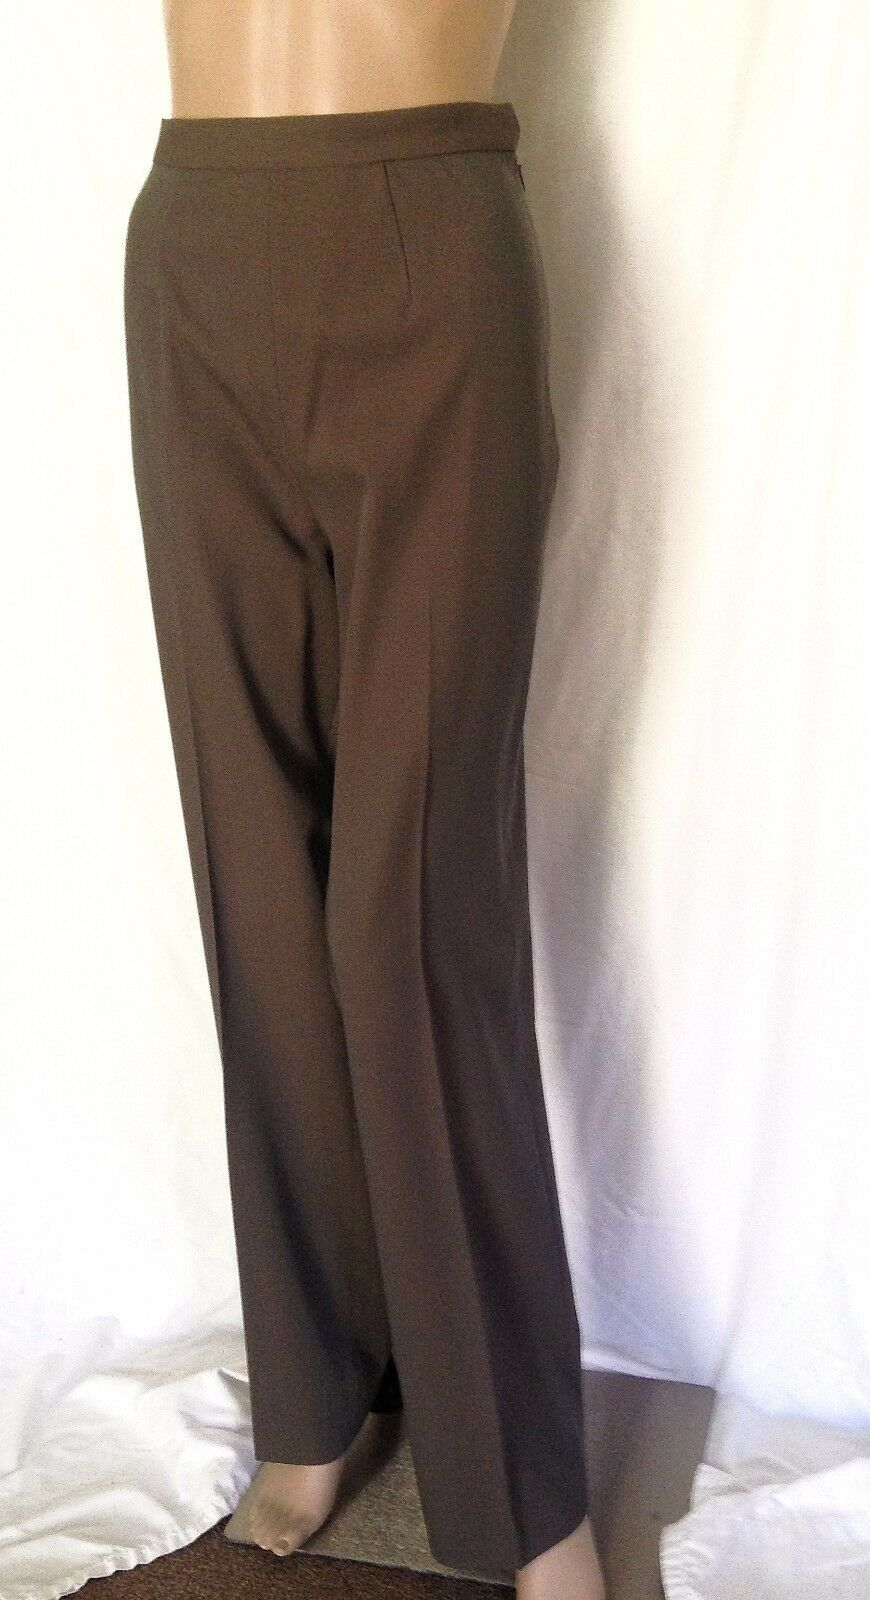 Jean Paul Gaultier Classique Olive Grün Light Wool Pants Größe 12 - EUC